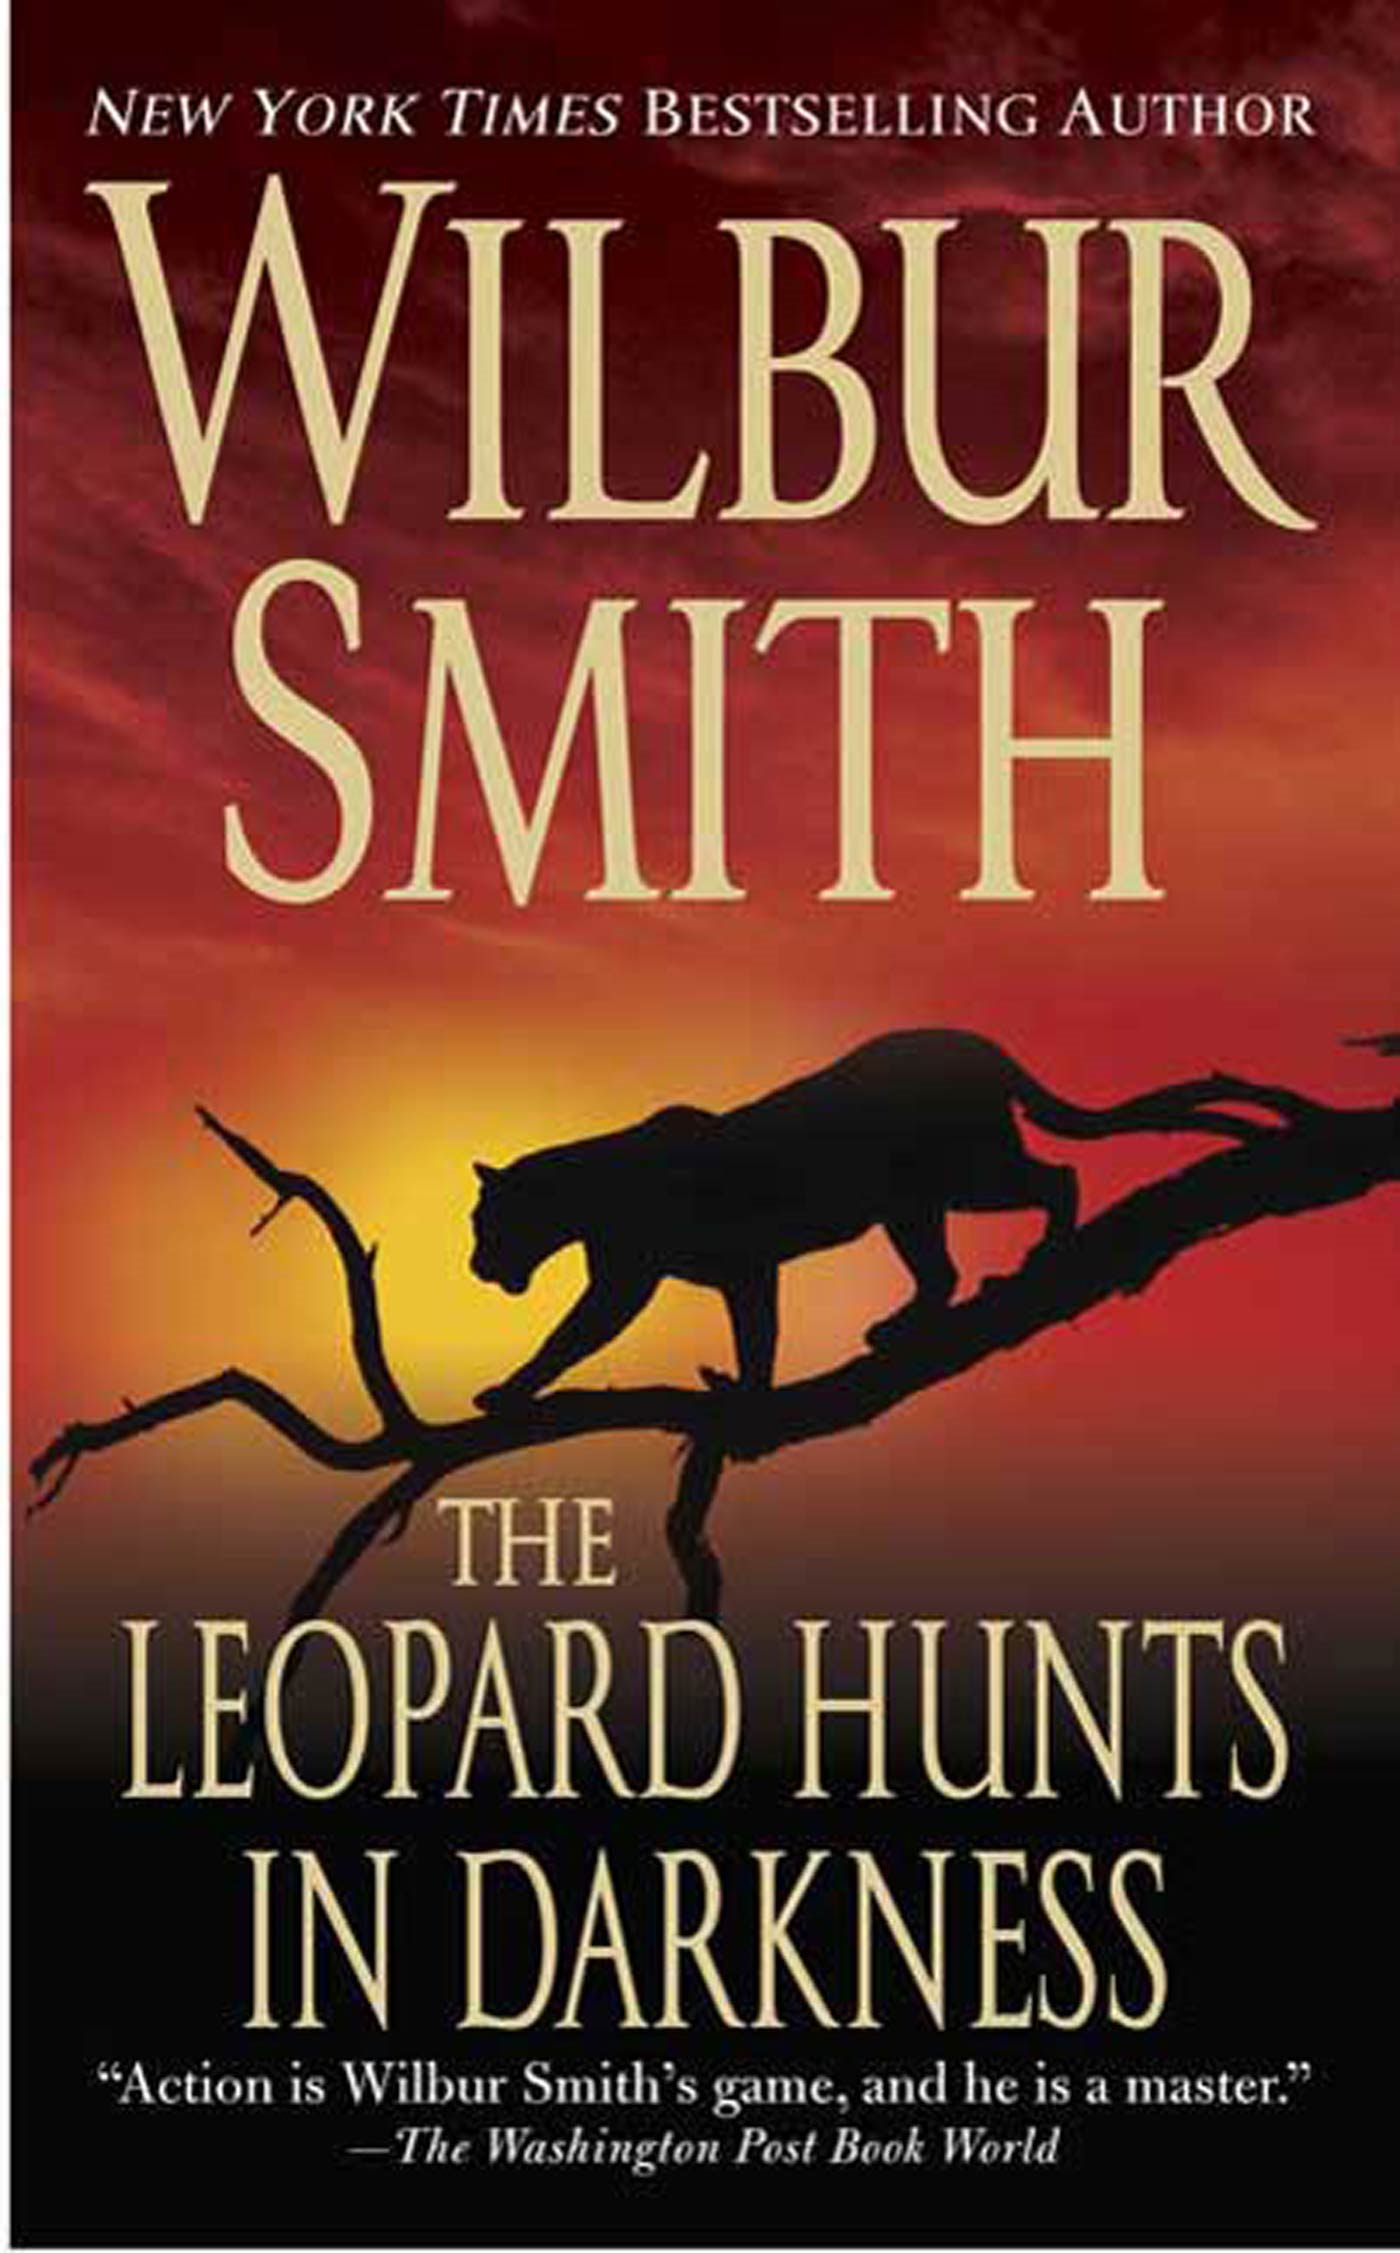 Cover Image: The Leopard Hunts in Darkness